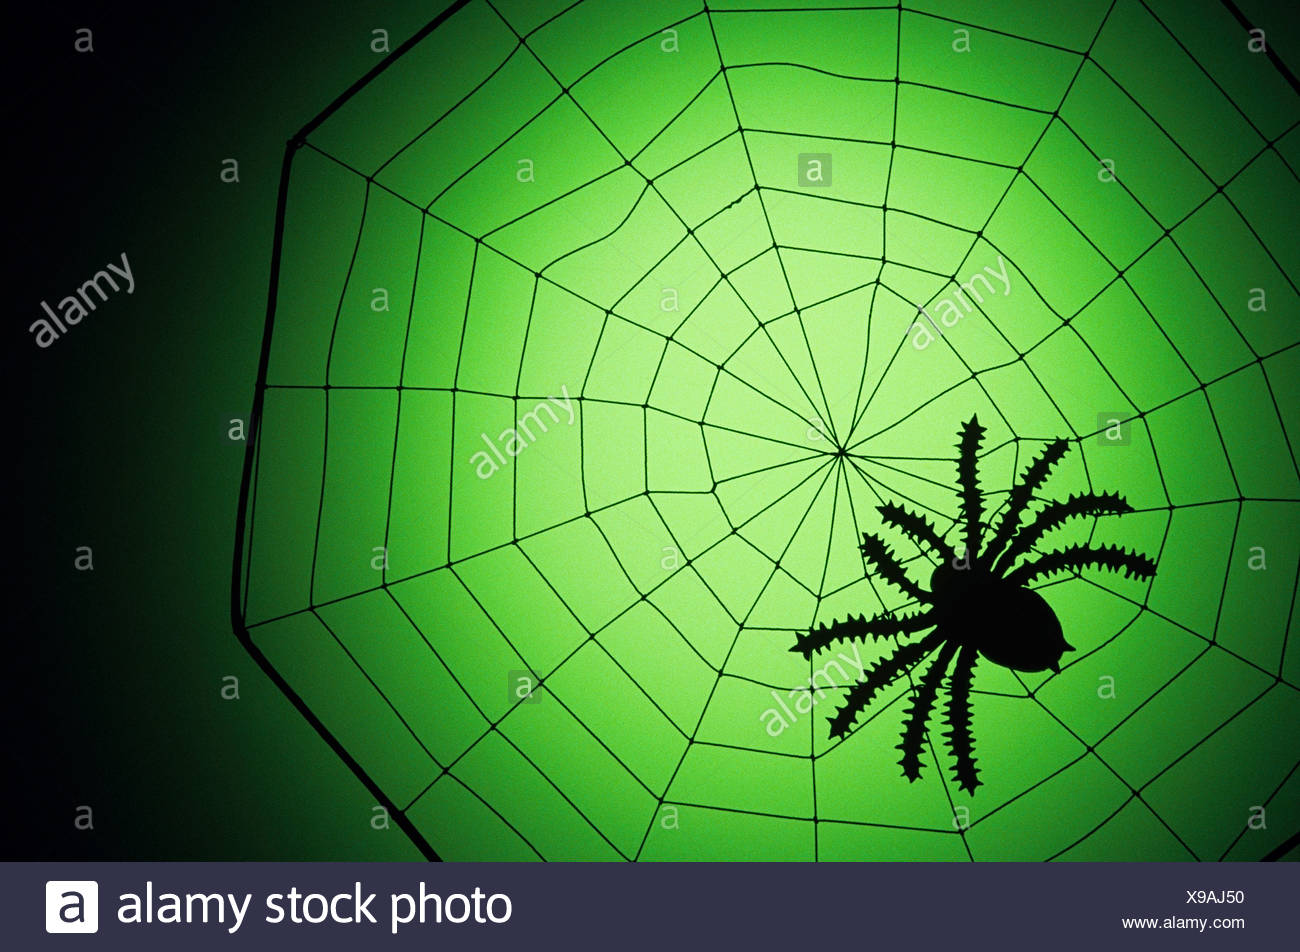 Spider on a web - Stock Image